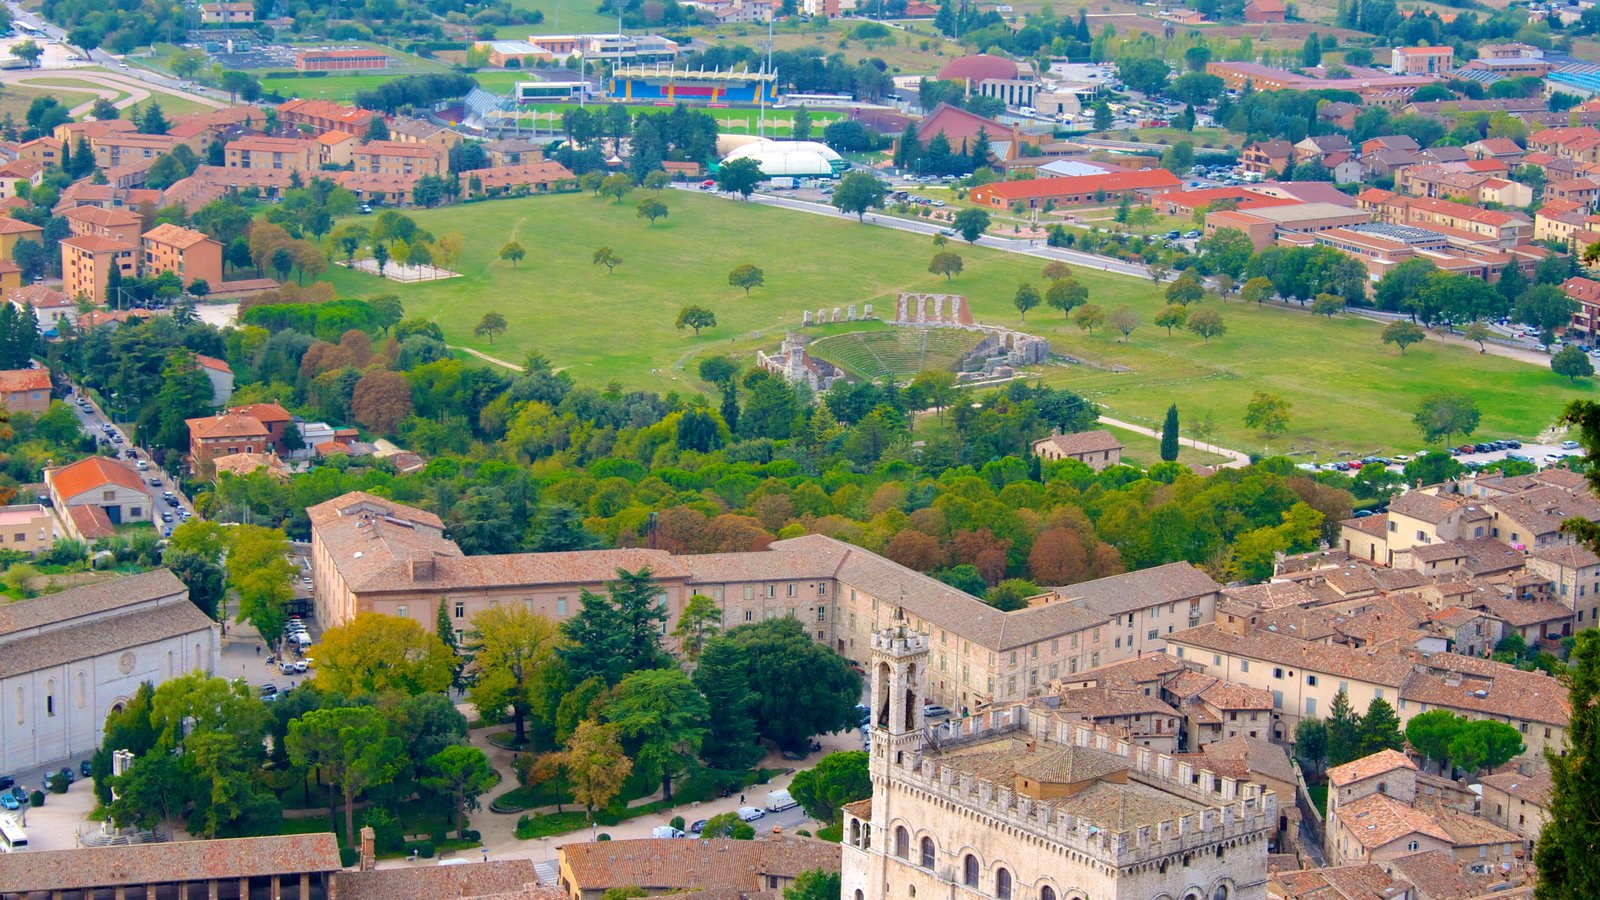 Gubbio which includes heritage architecture and a small town or village